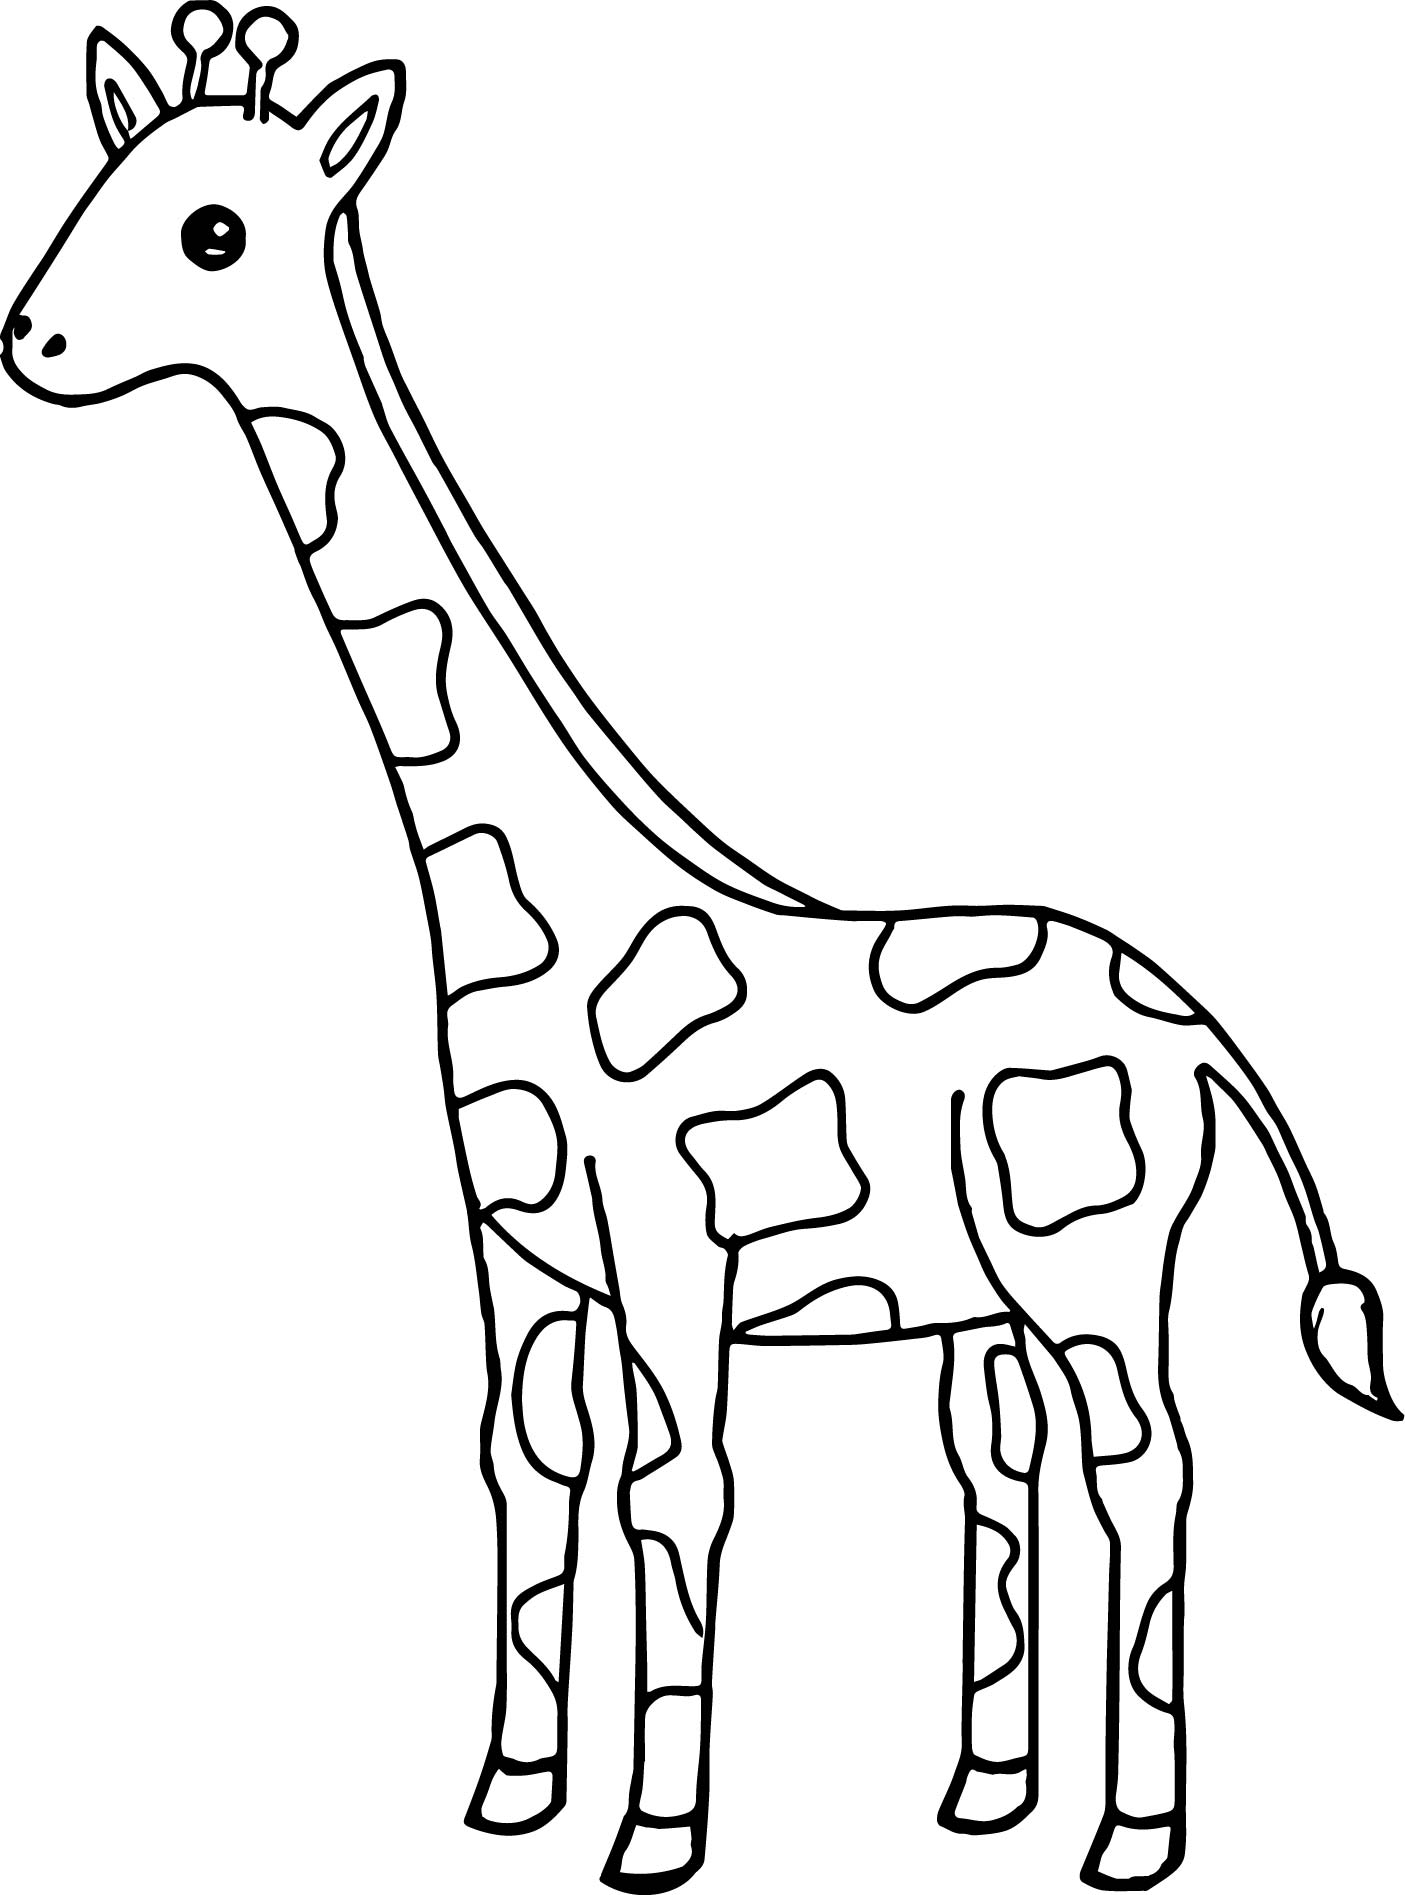 1405x1895 Giraffe Images For Coloring Cow Coloring